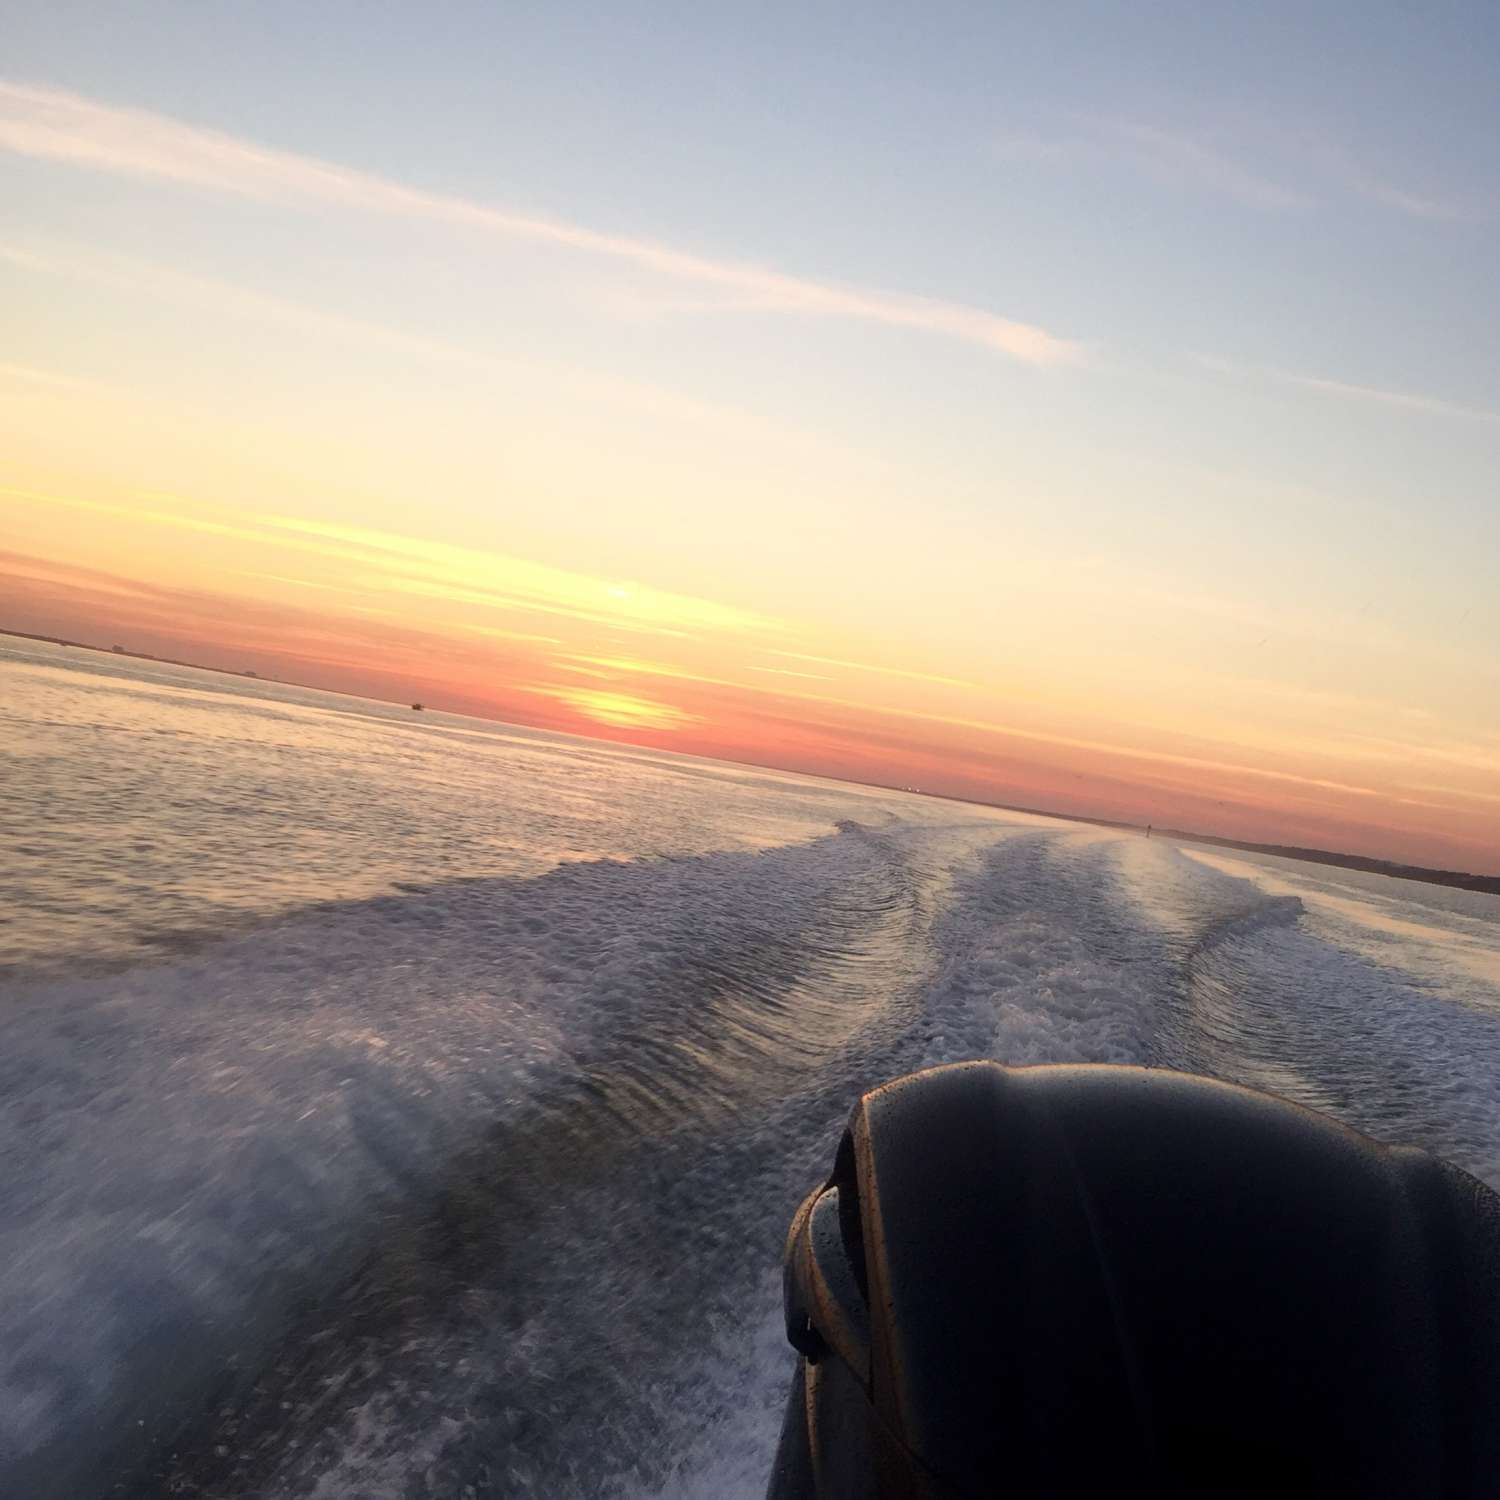 Title: First Night Sunset - On board their Sportsman Open 232 Center Console - Location: Morehead City, North Carolina. Participating in the Photo Contest #SportsmanNovember2015